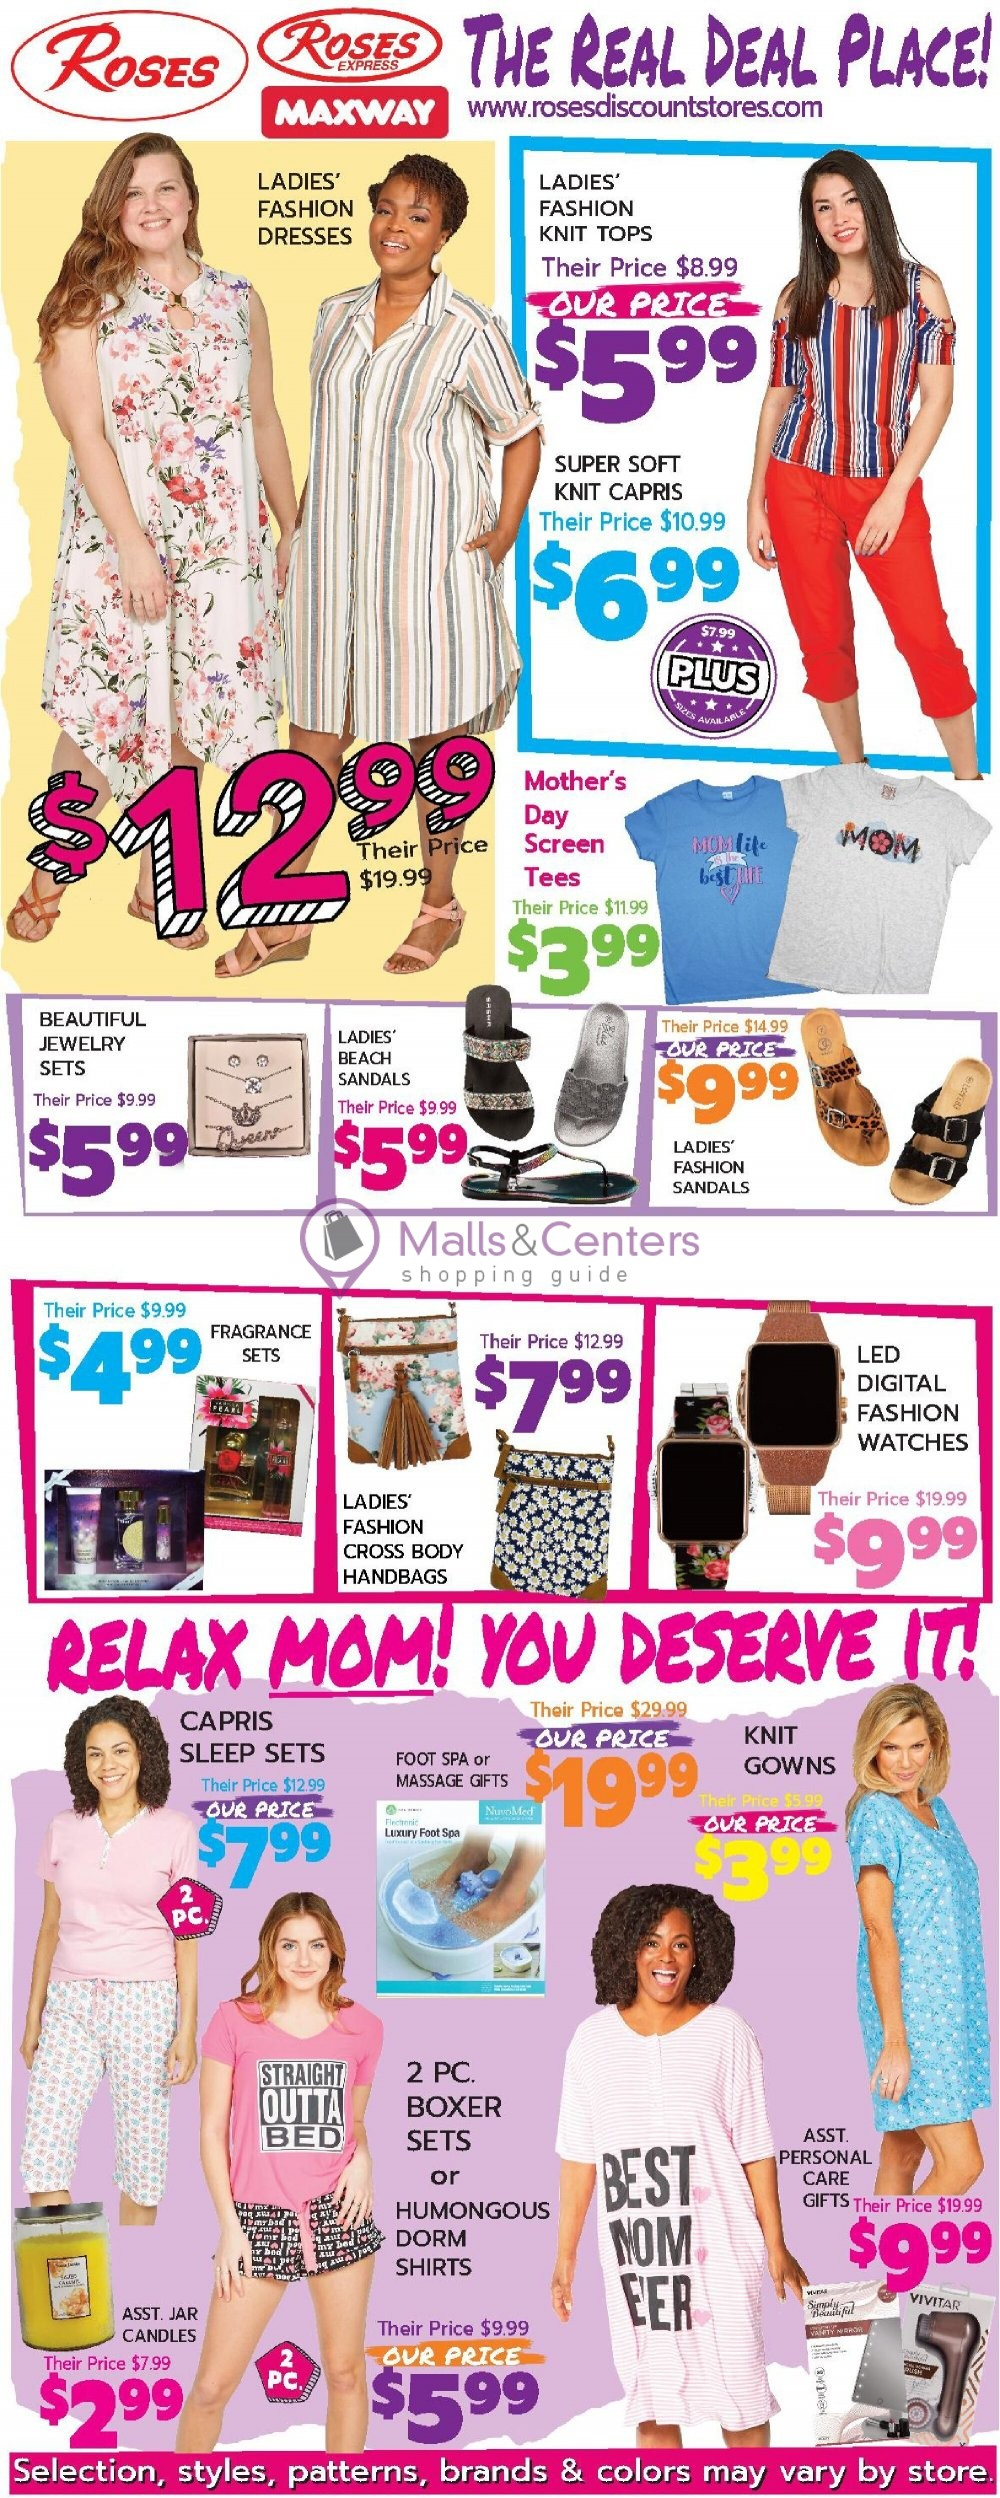 weekly ads Roses Discount Stores - page 1 - mallscenters.com